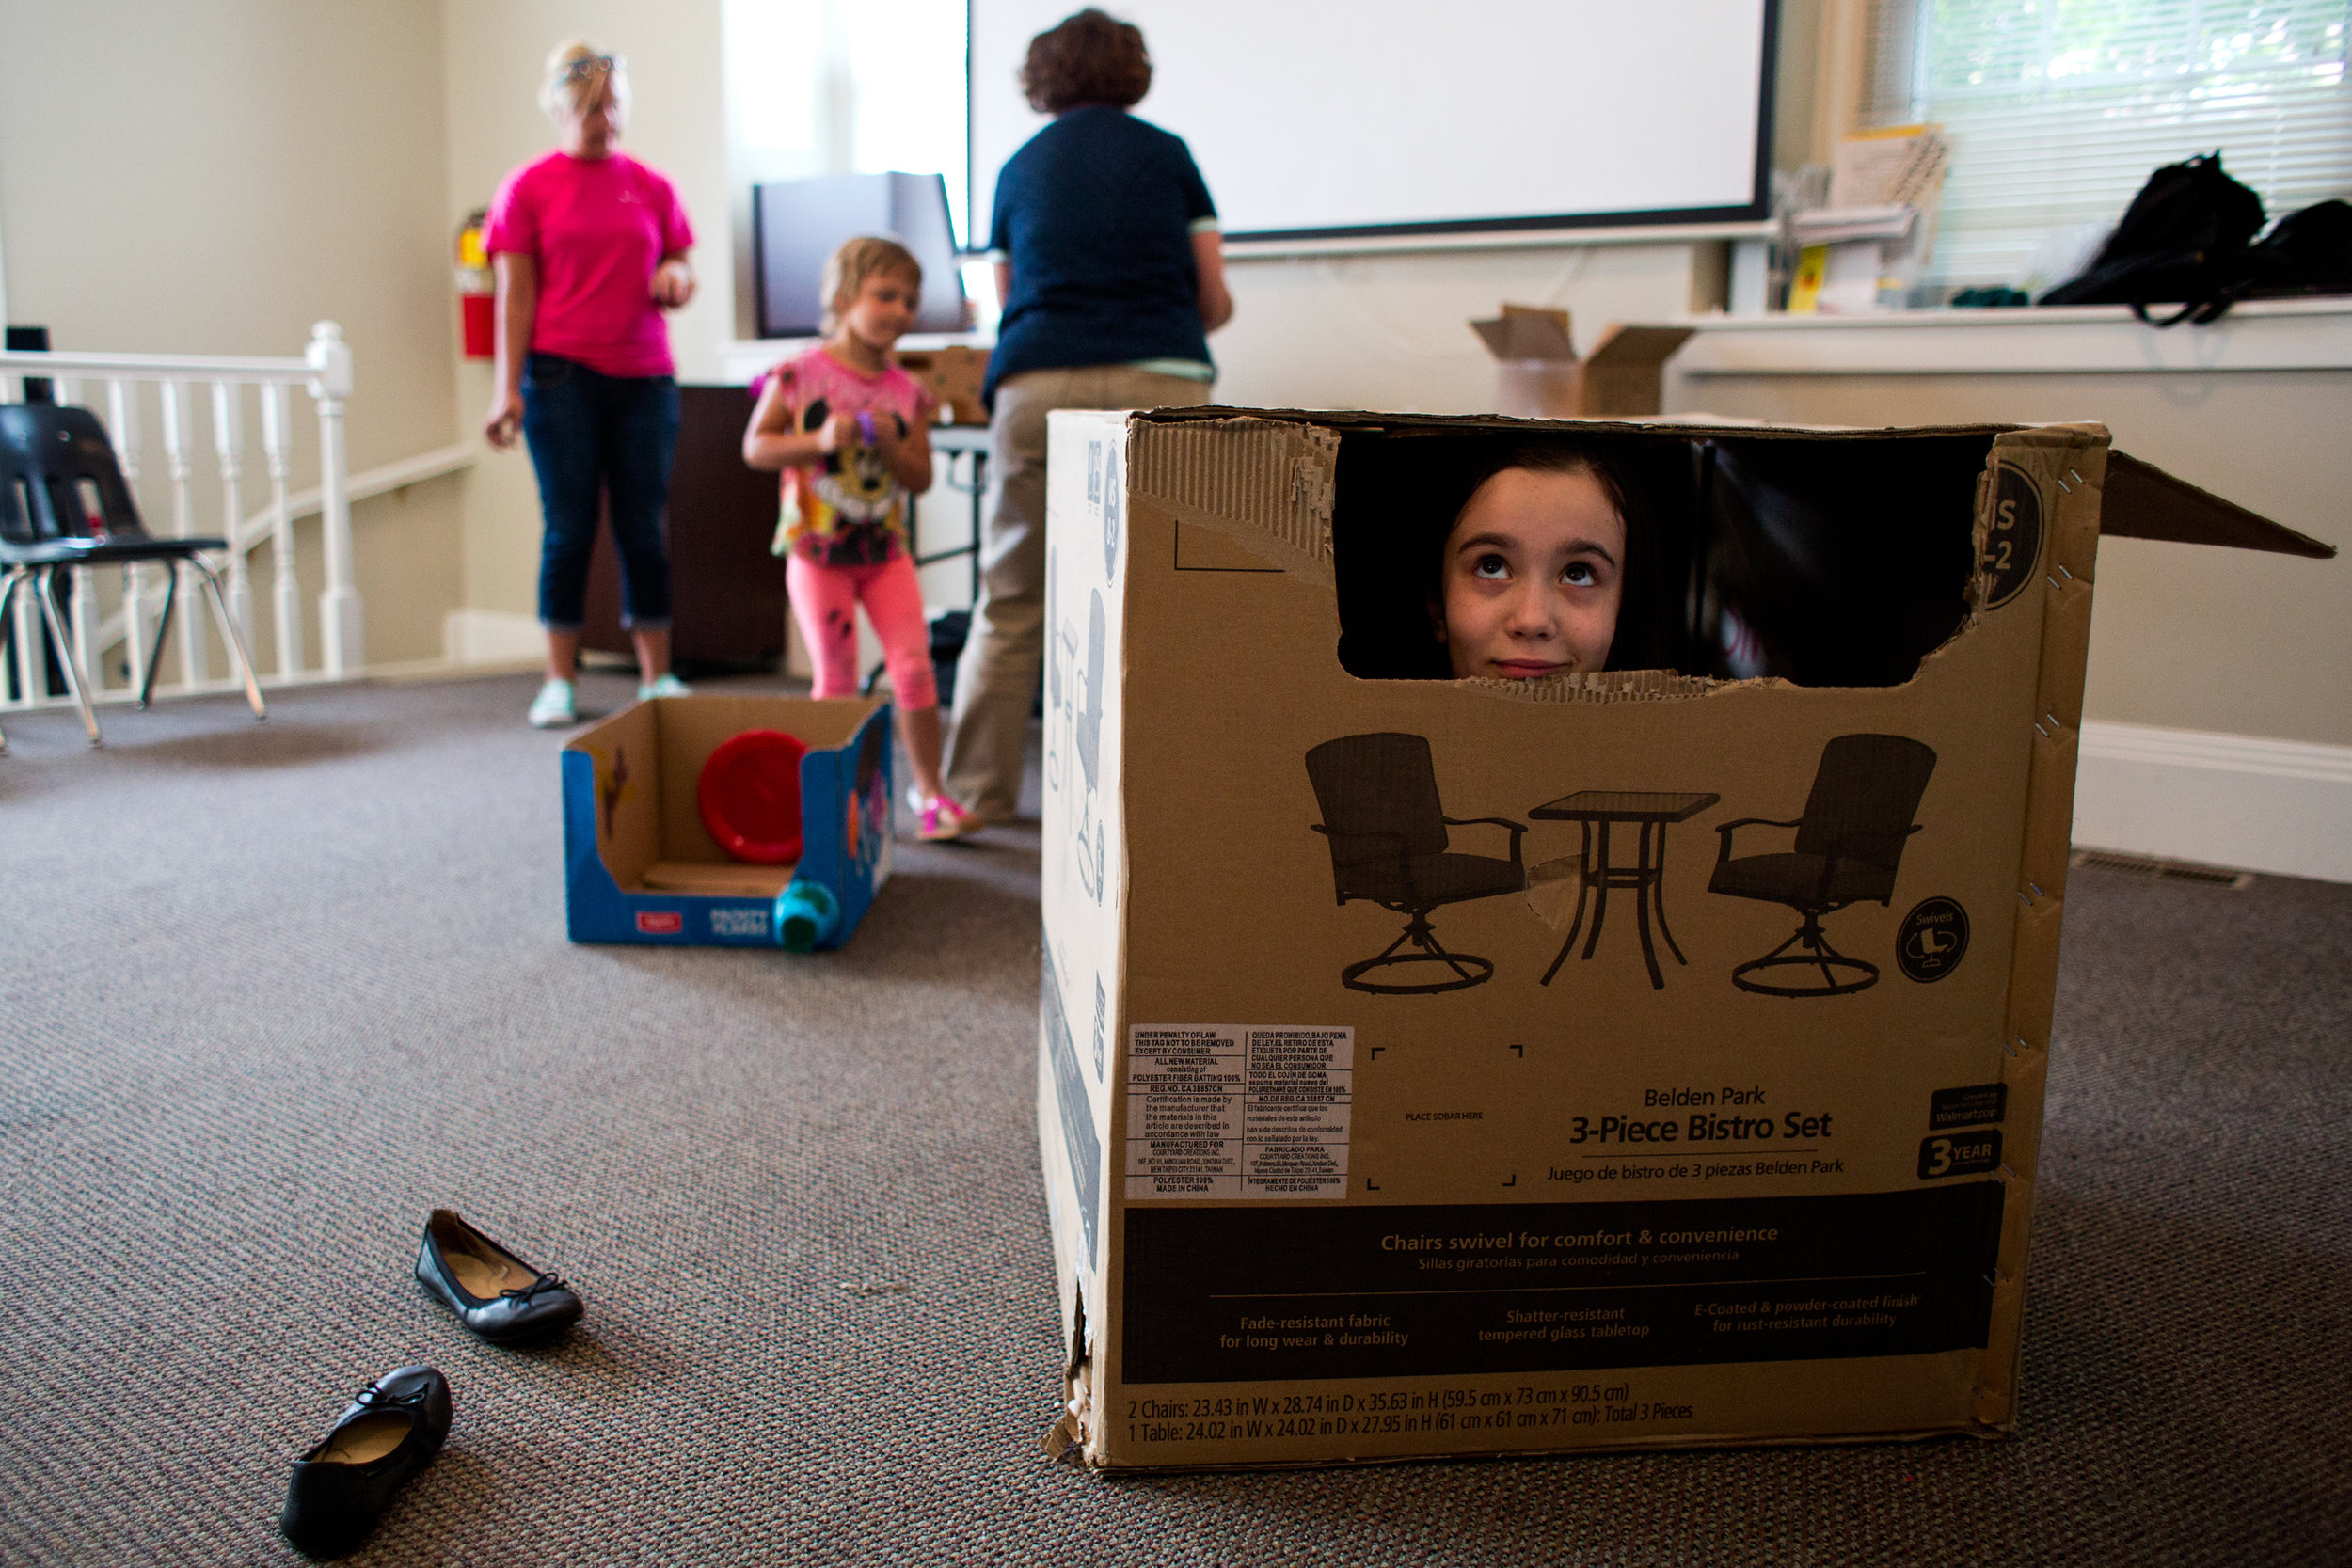 Madeline Zipp-Nathan of Jasper, 9, peeked out of the box she was decorating during Thursday's Cardboard Car Project at the Jasper Library Annex. The library provided paint, stickers, plastic plates, cups and more for children to decorate their boxes.